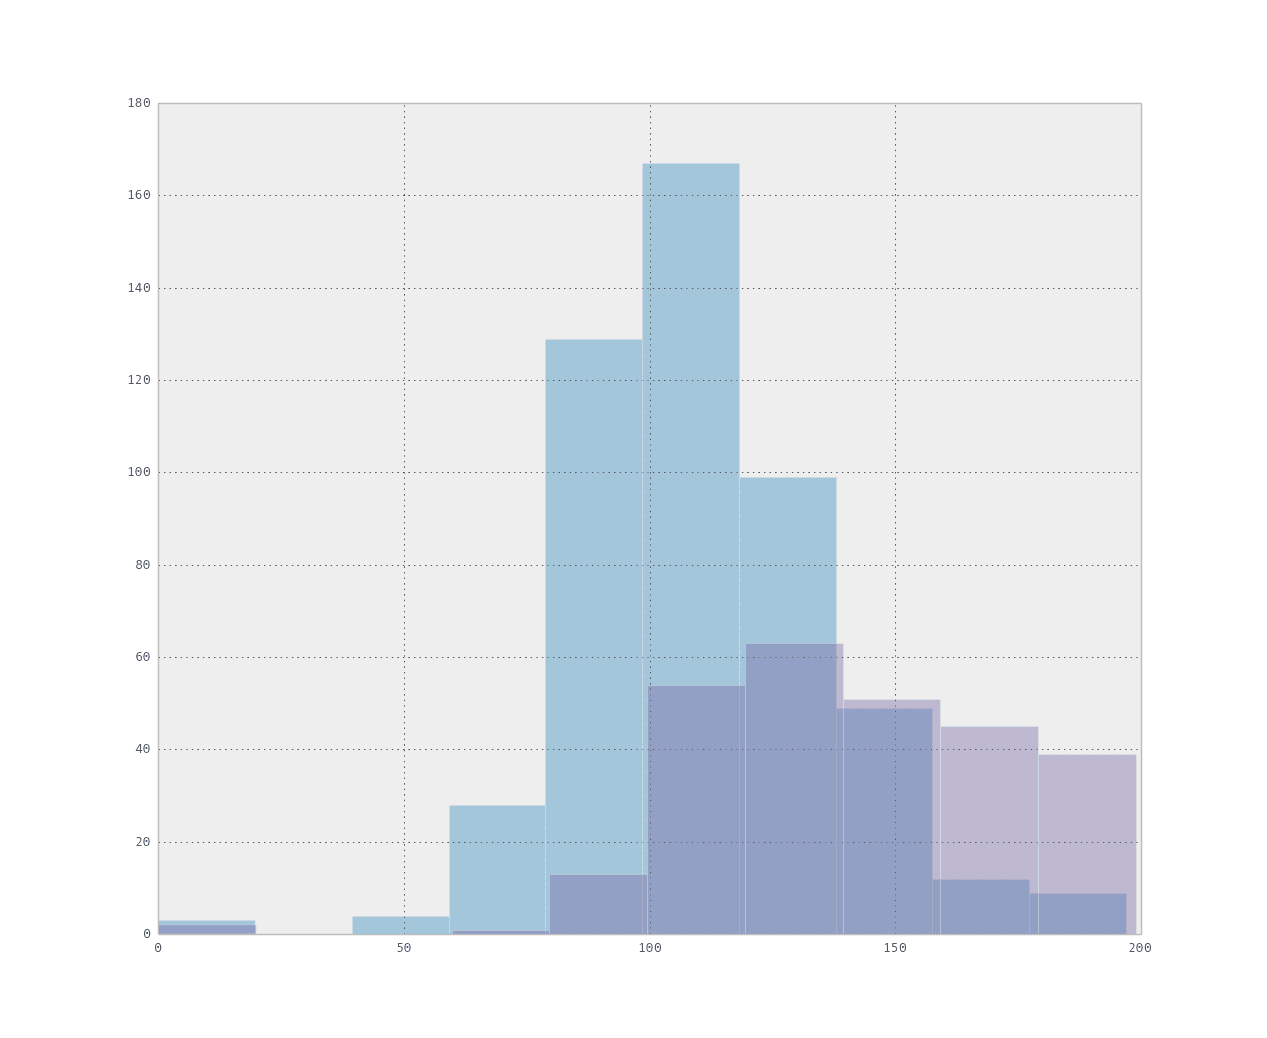 hight resolution of overlapping attribute histograms for each class